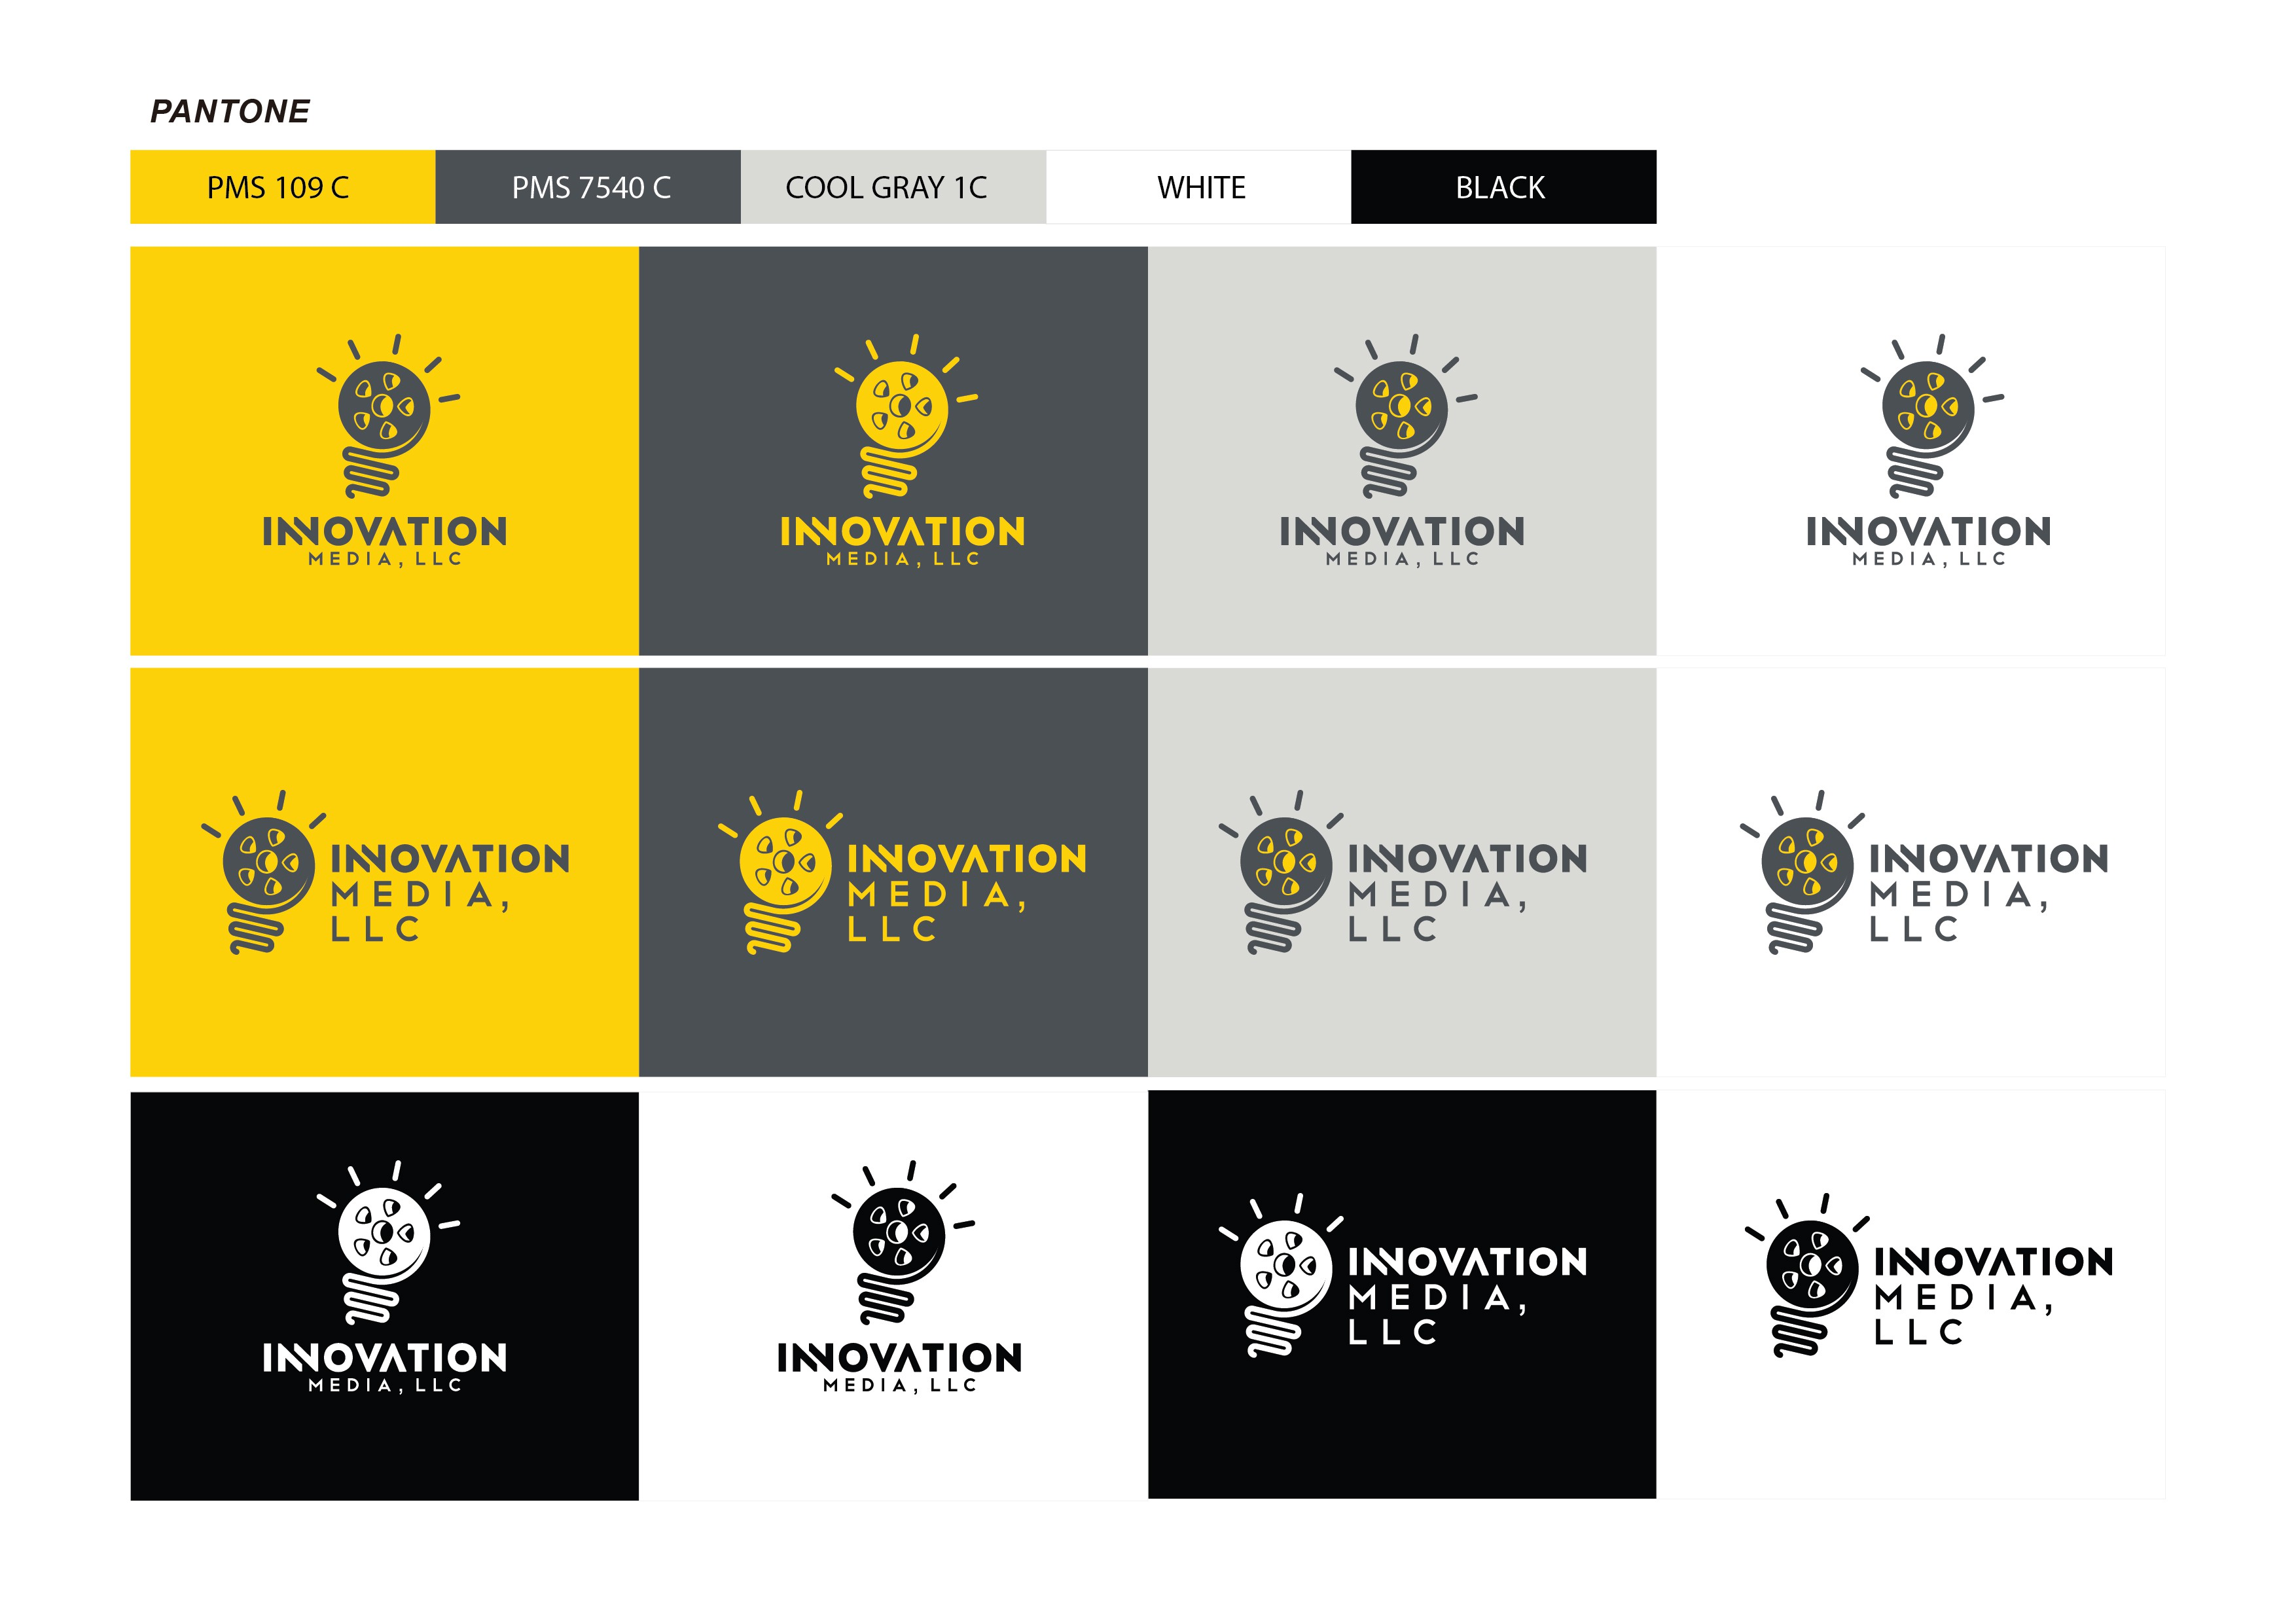 Looking for Clean, Modern, Bold, Iconic logo design for Innovation Media Group